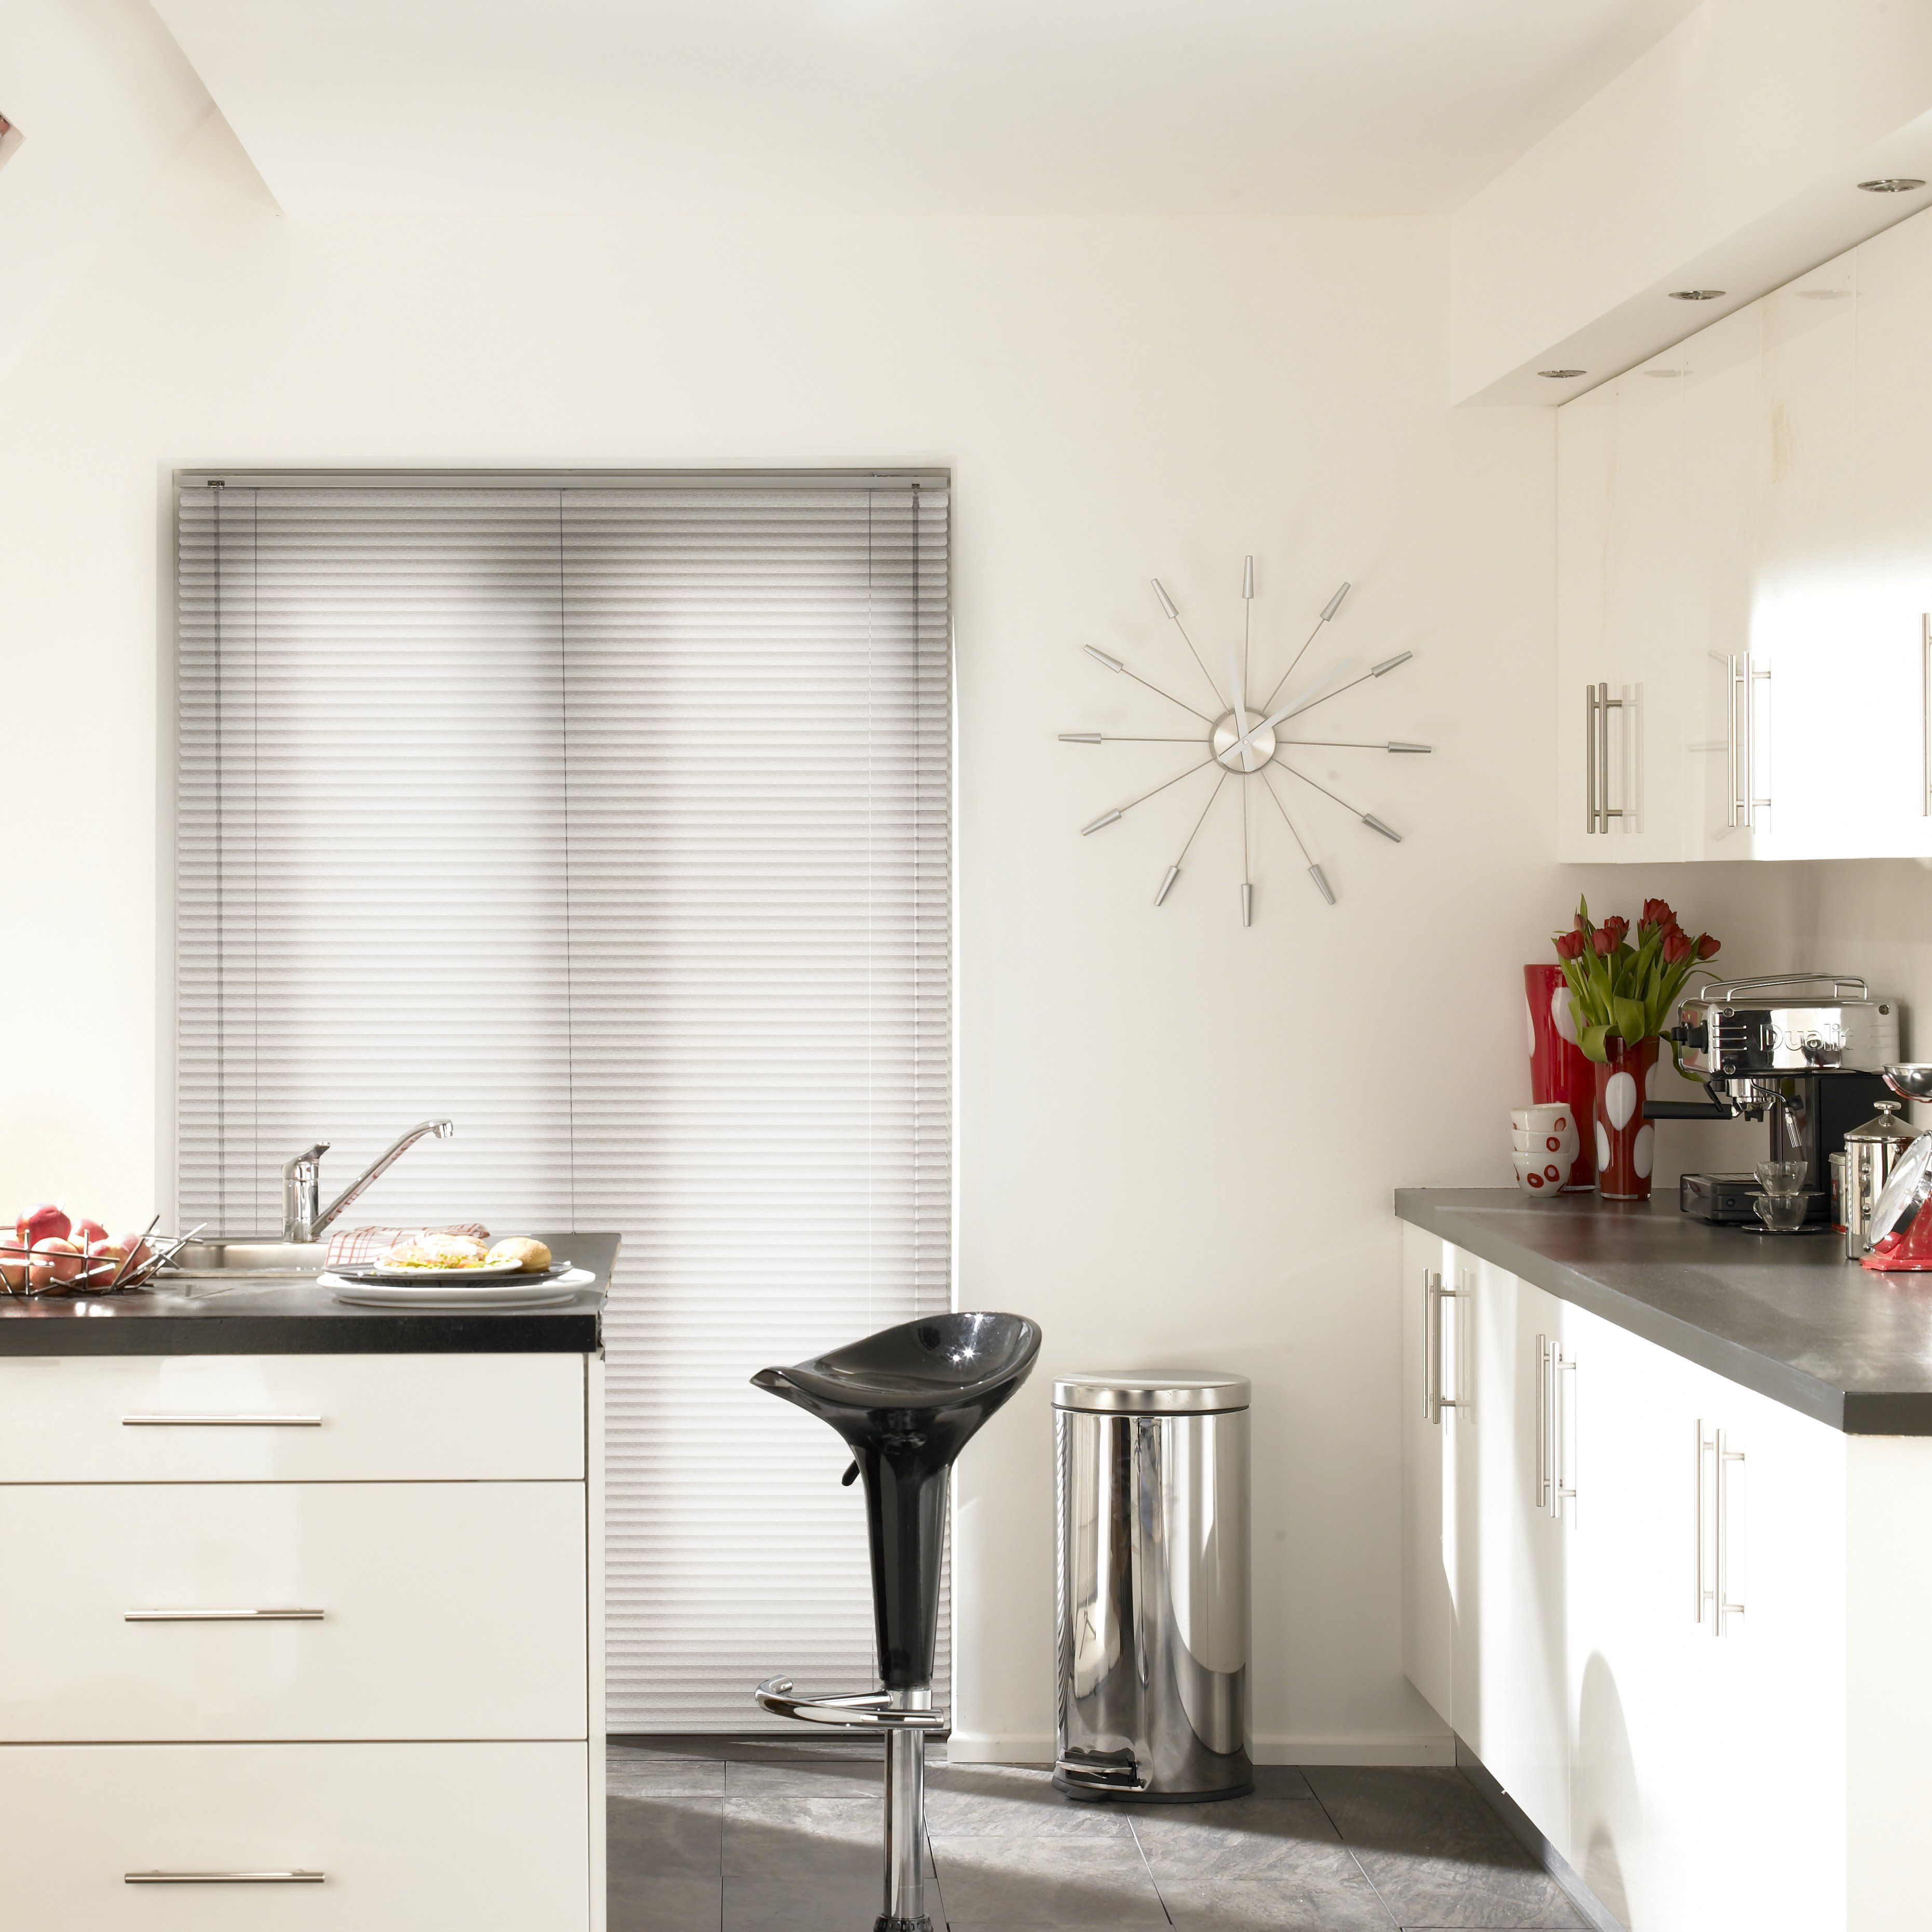 White Aluwood Alpine Venetian blinds in a modern kitchen